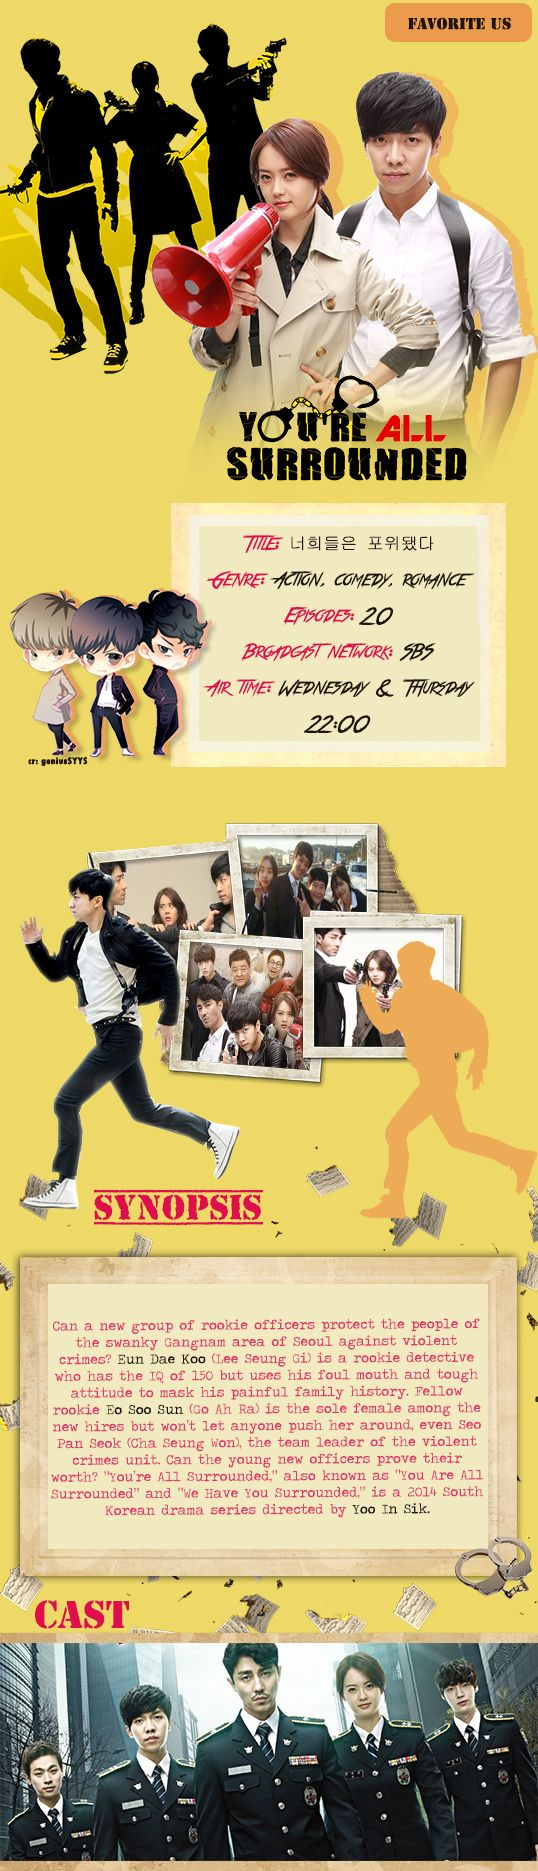 You're All Surrounded (a.k.a. We Have You Surrounded ) - 너희들은 포위됐다 - Watch Full Episodes Free - Korea - TV Shows - Viki